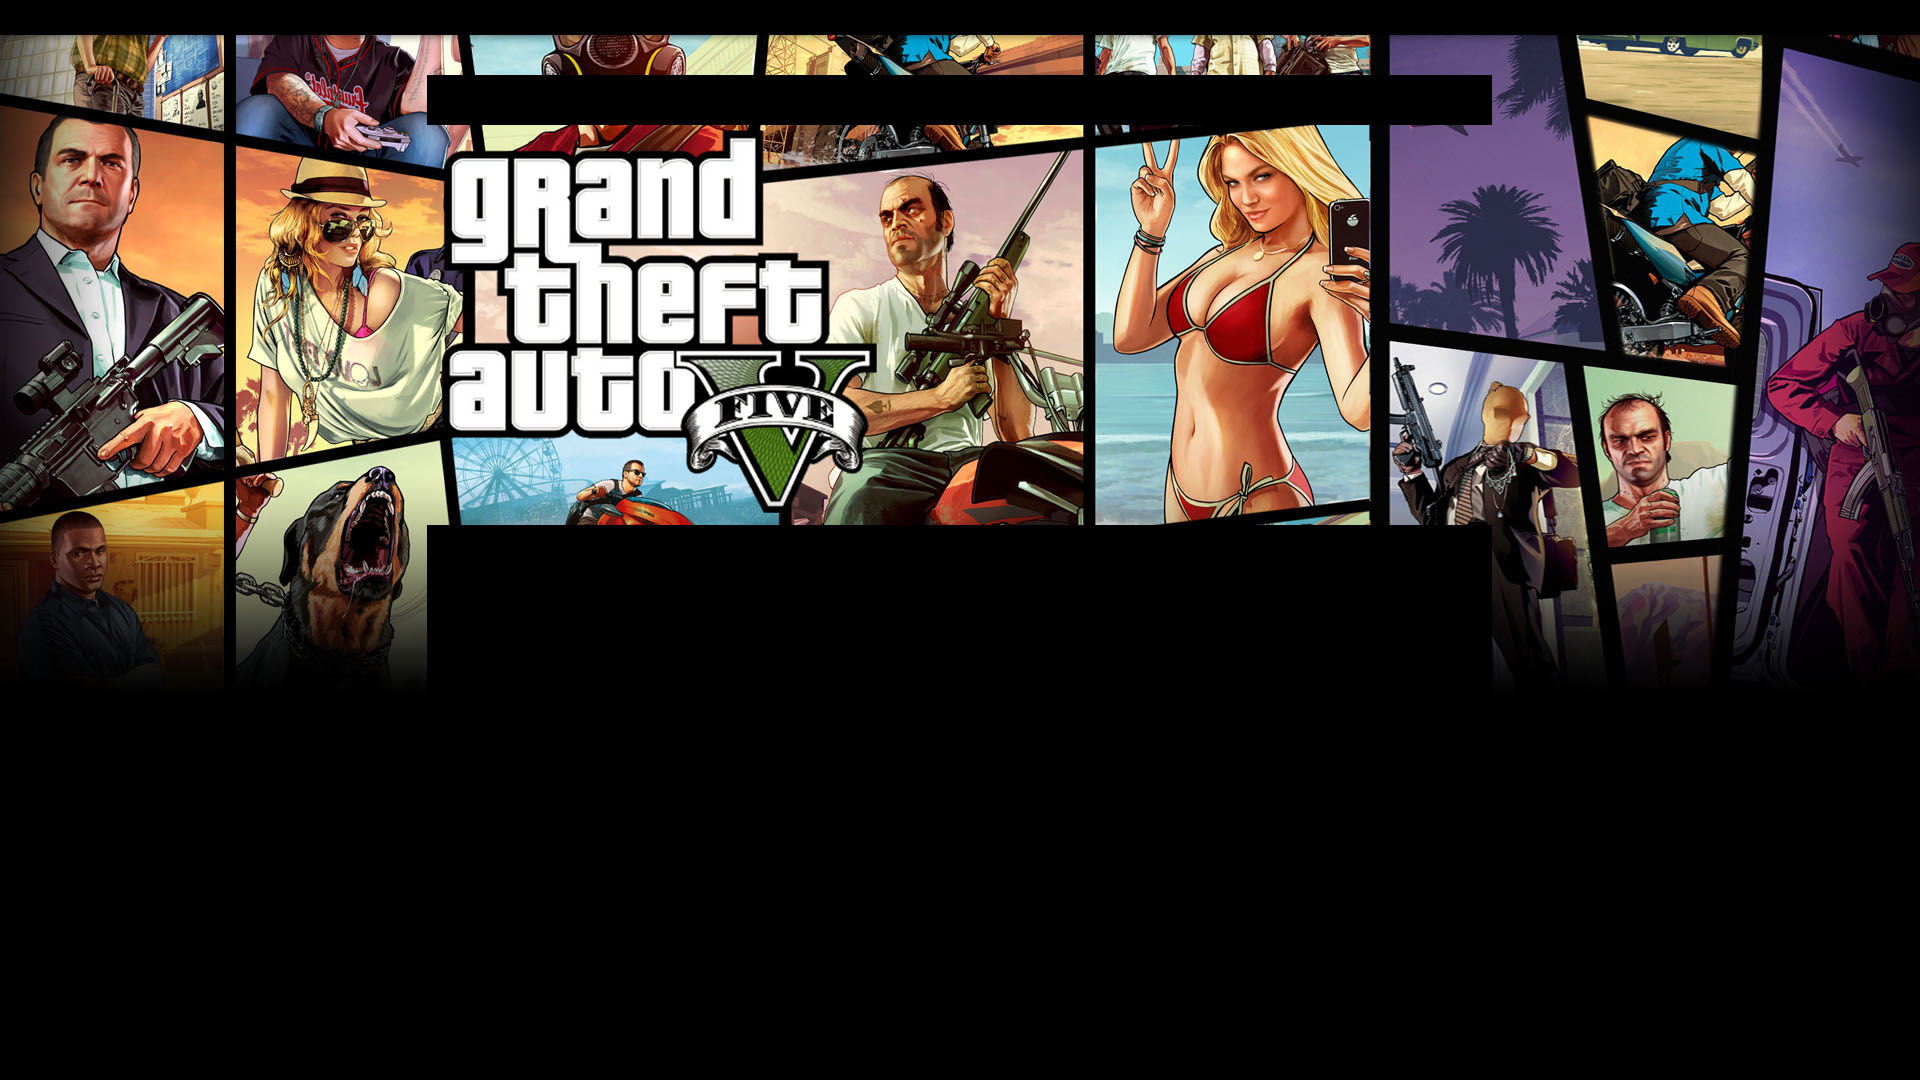 GRAND THEFT AUTO V PC/PS3/PS4 video game